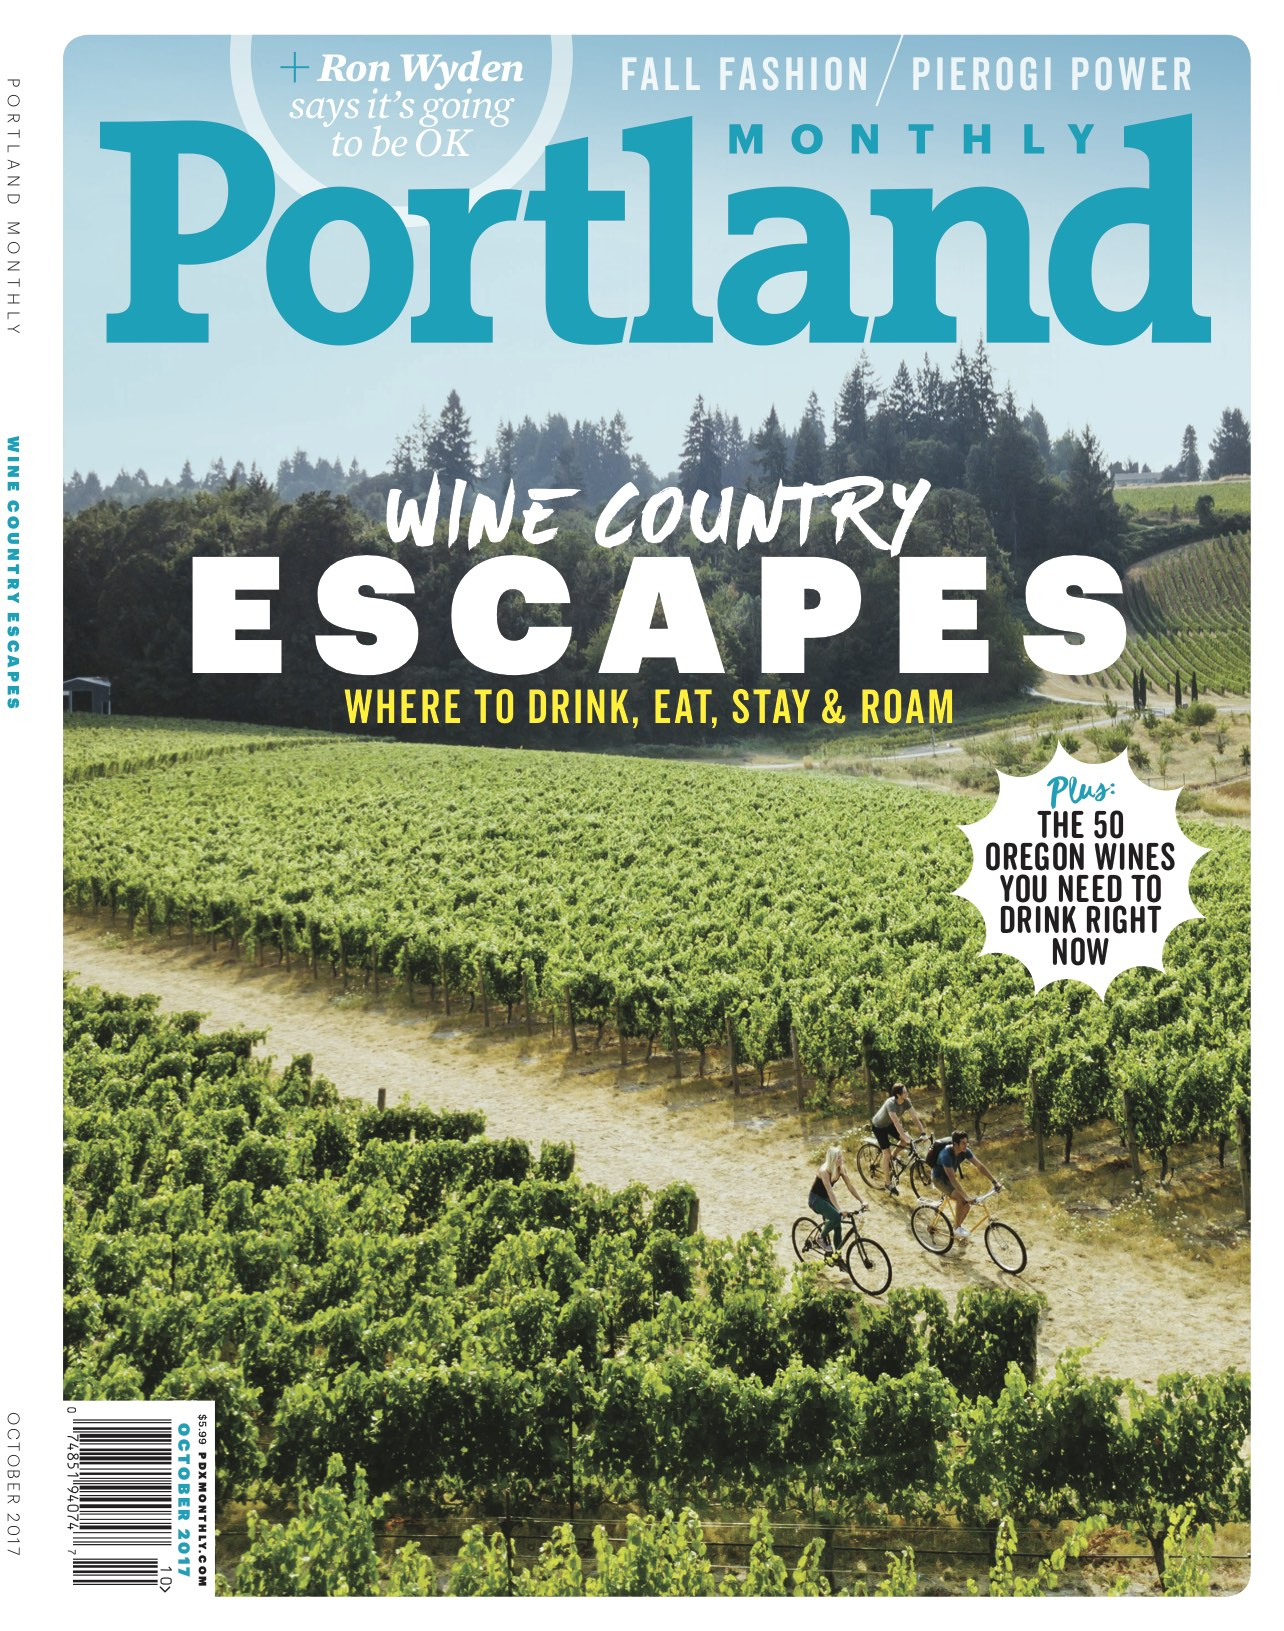 Portland Monthly Cover Story